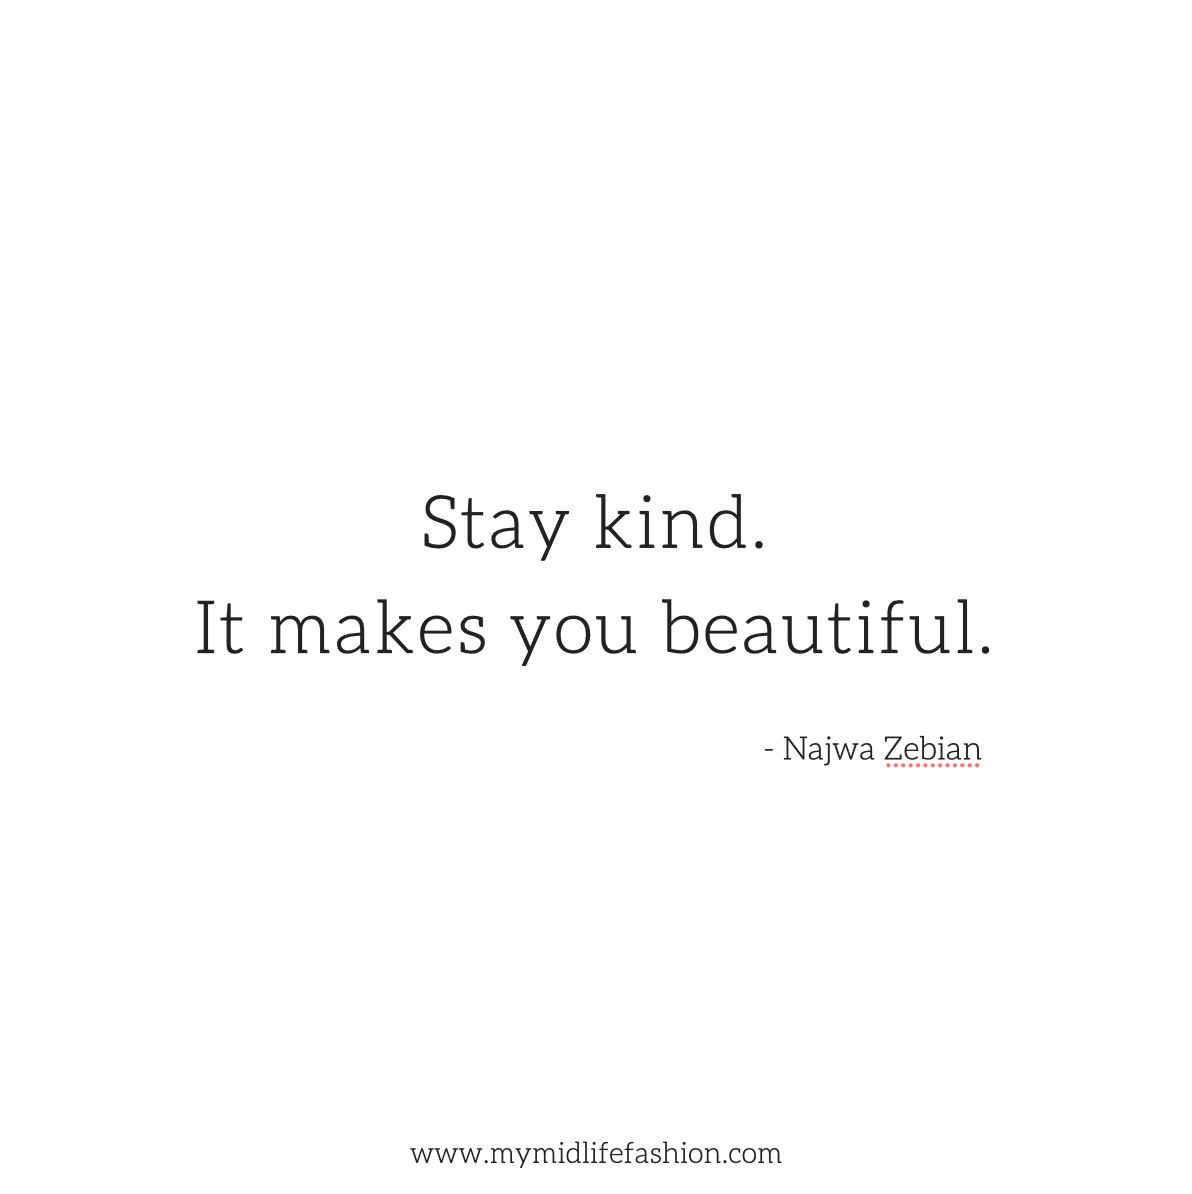 #beauty #kind #quote #quoteoftheday #truebeauty #quote #quotes #saying #sayings #sayingstoliveby #innerbeauty